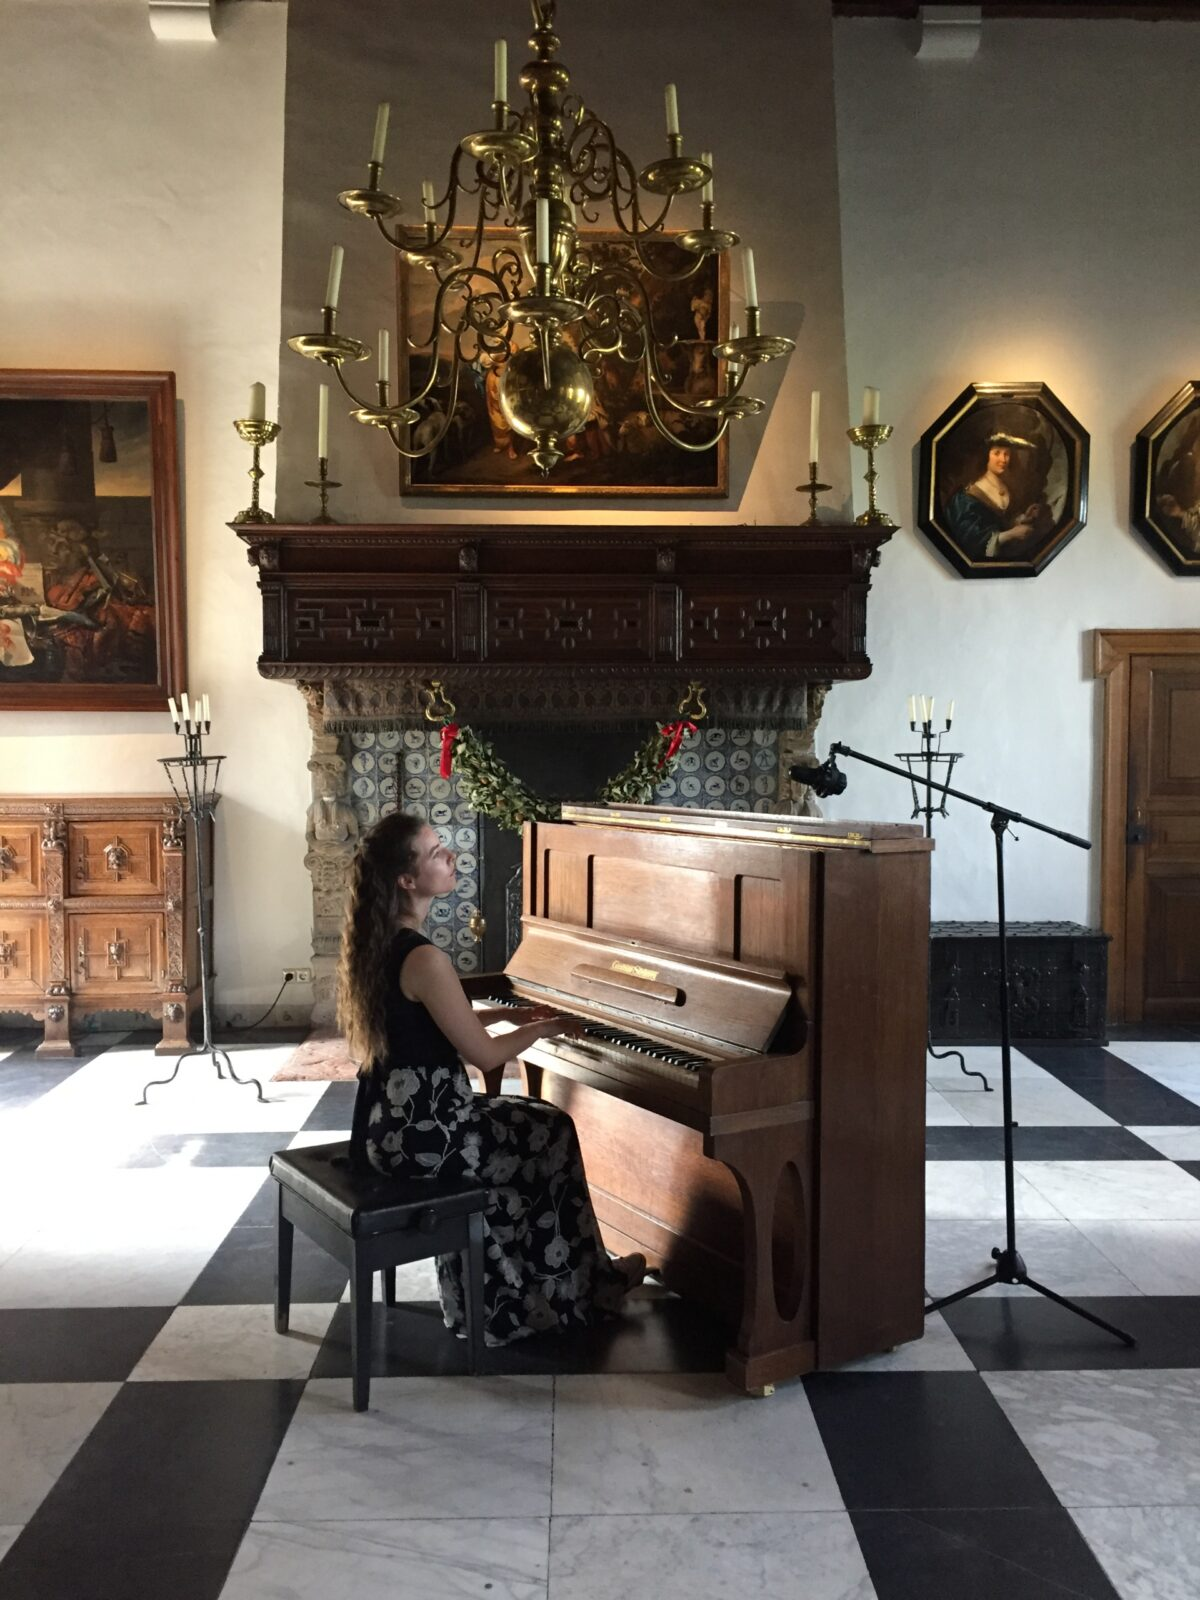 Piano recital by Anne-Maartje Lemereis at the Muiderslot